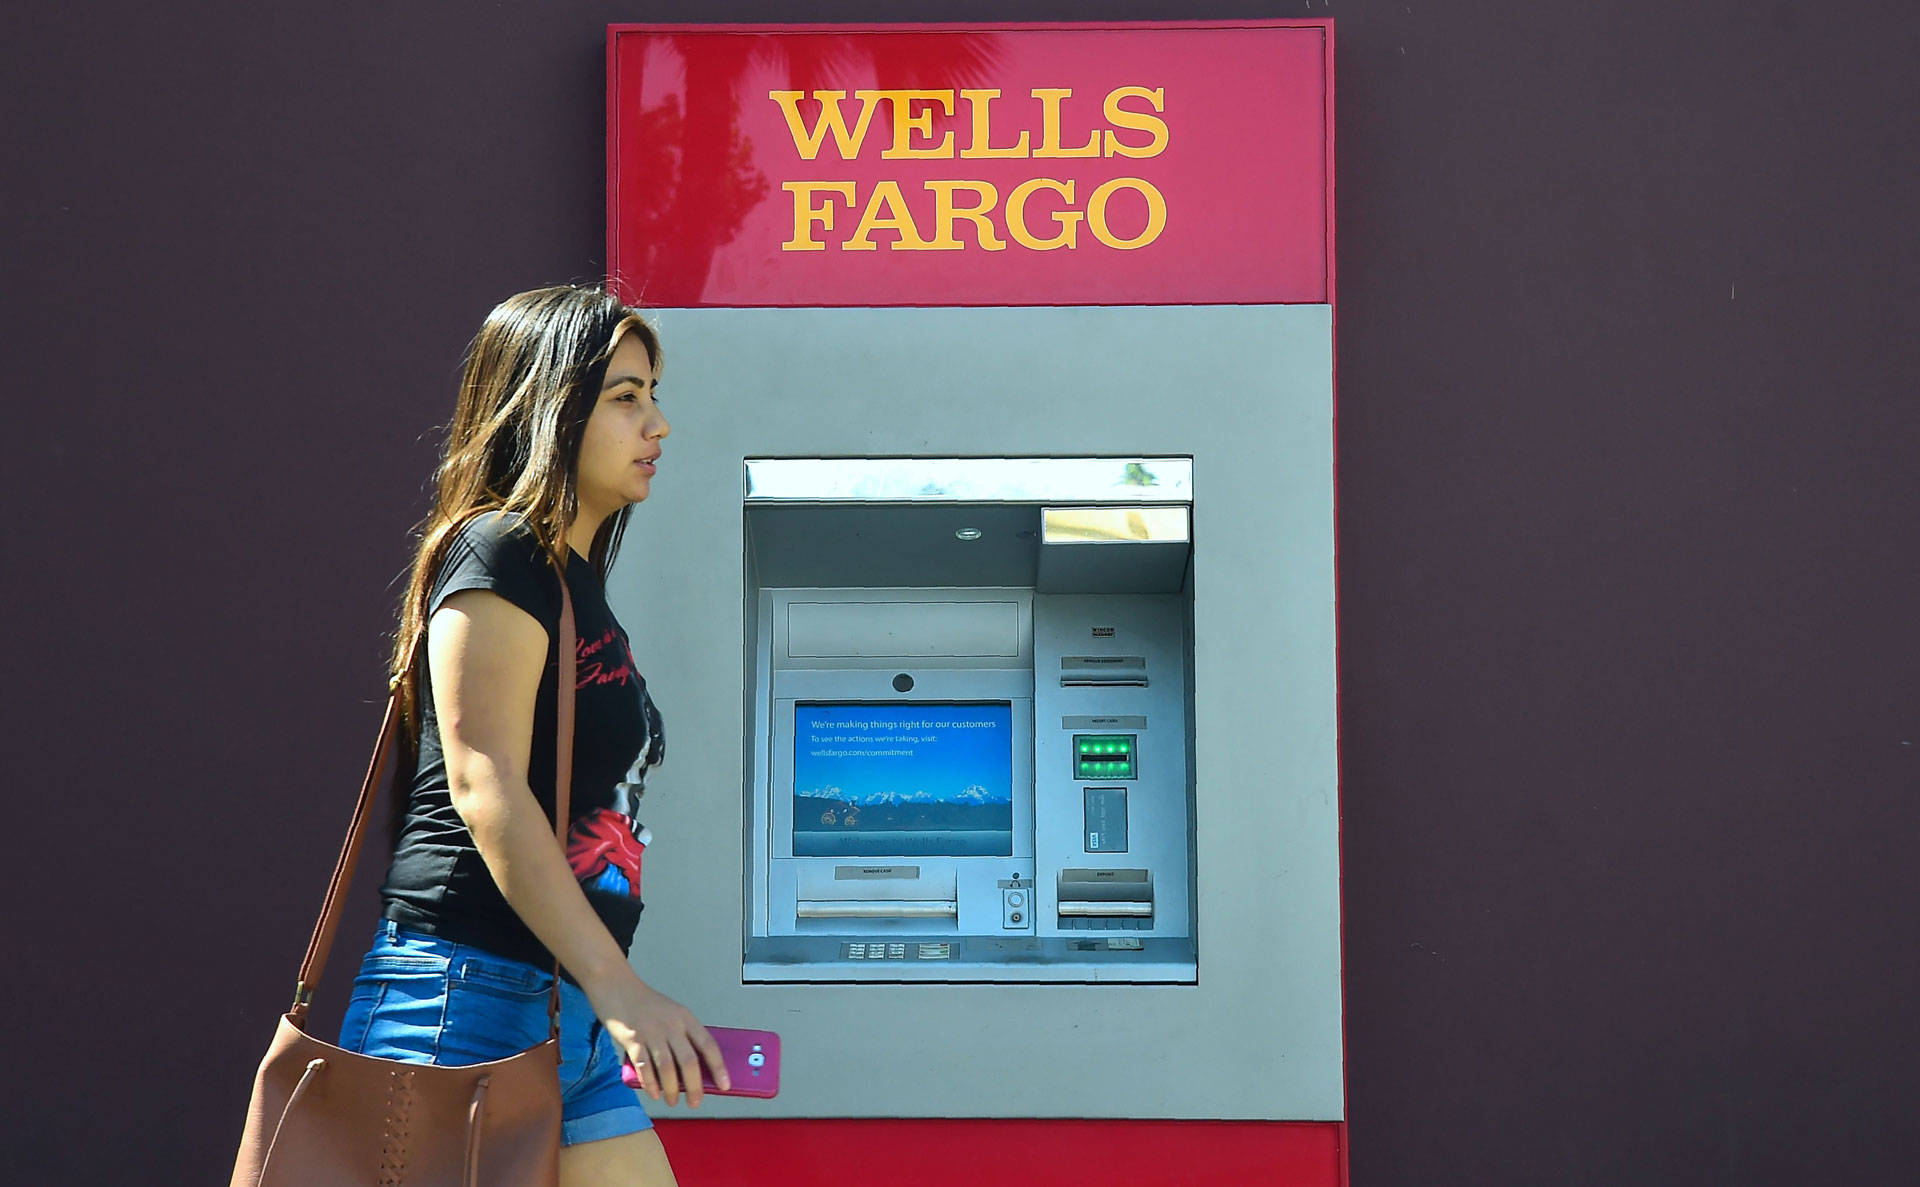 A woman walks past a Wells Fargo ATM in Pasadena on September 28, 2016. California Treasurer John Chiang said the state will suspend several banking relationships with Wells Fargo to sanction the firm following allegations of 'fleecing its customers.'